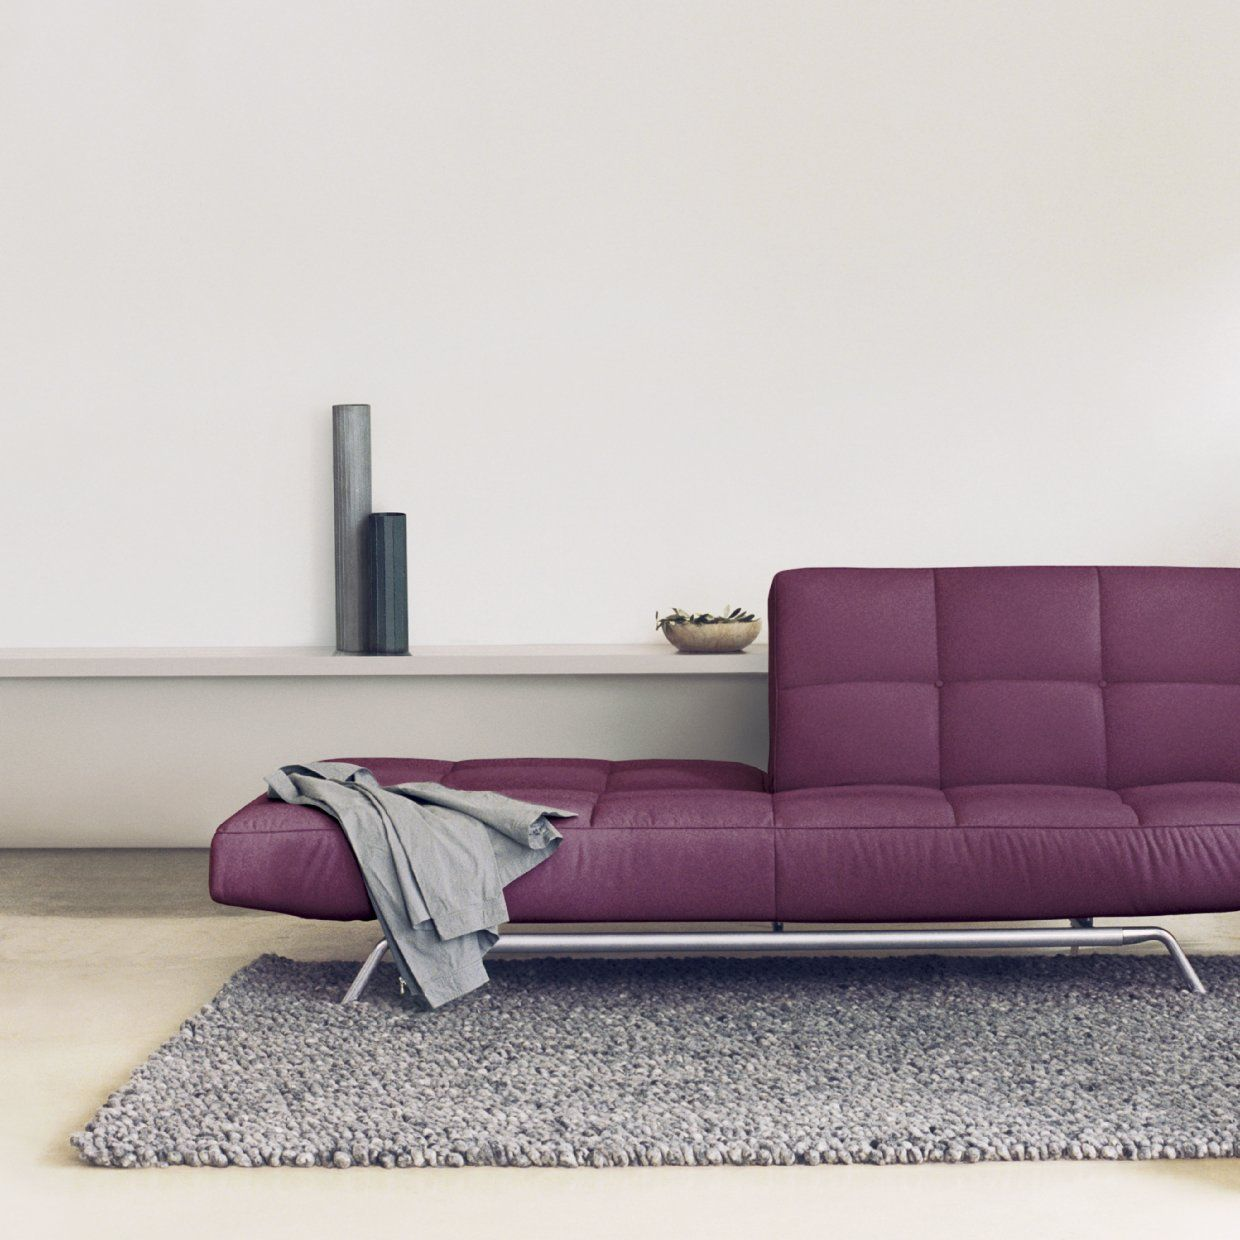 Smala By Pascal Mourgue Available At Your Local Linea Showroom Www Linea Inc Com Www Facebook Com Lin Modern Furniture Stores Furniture Design Furniture